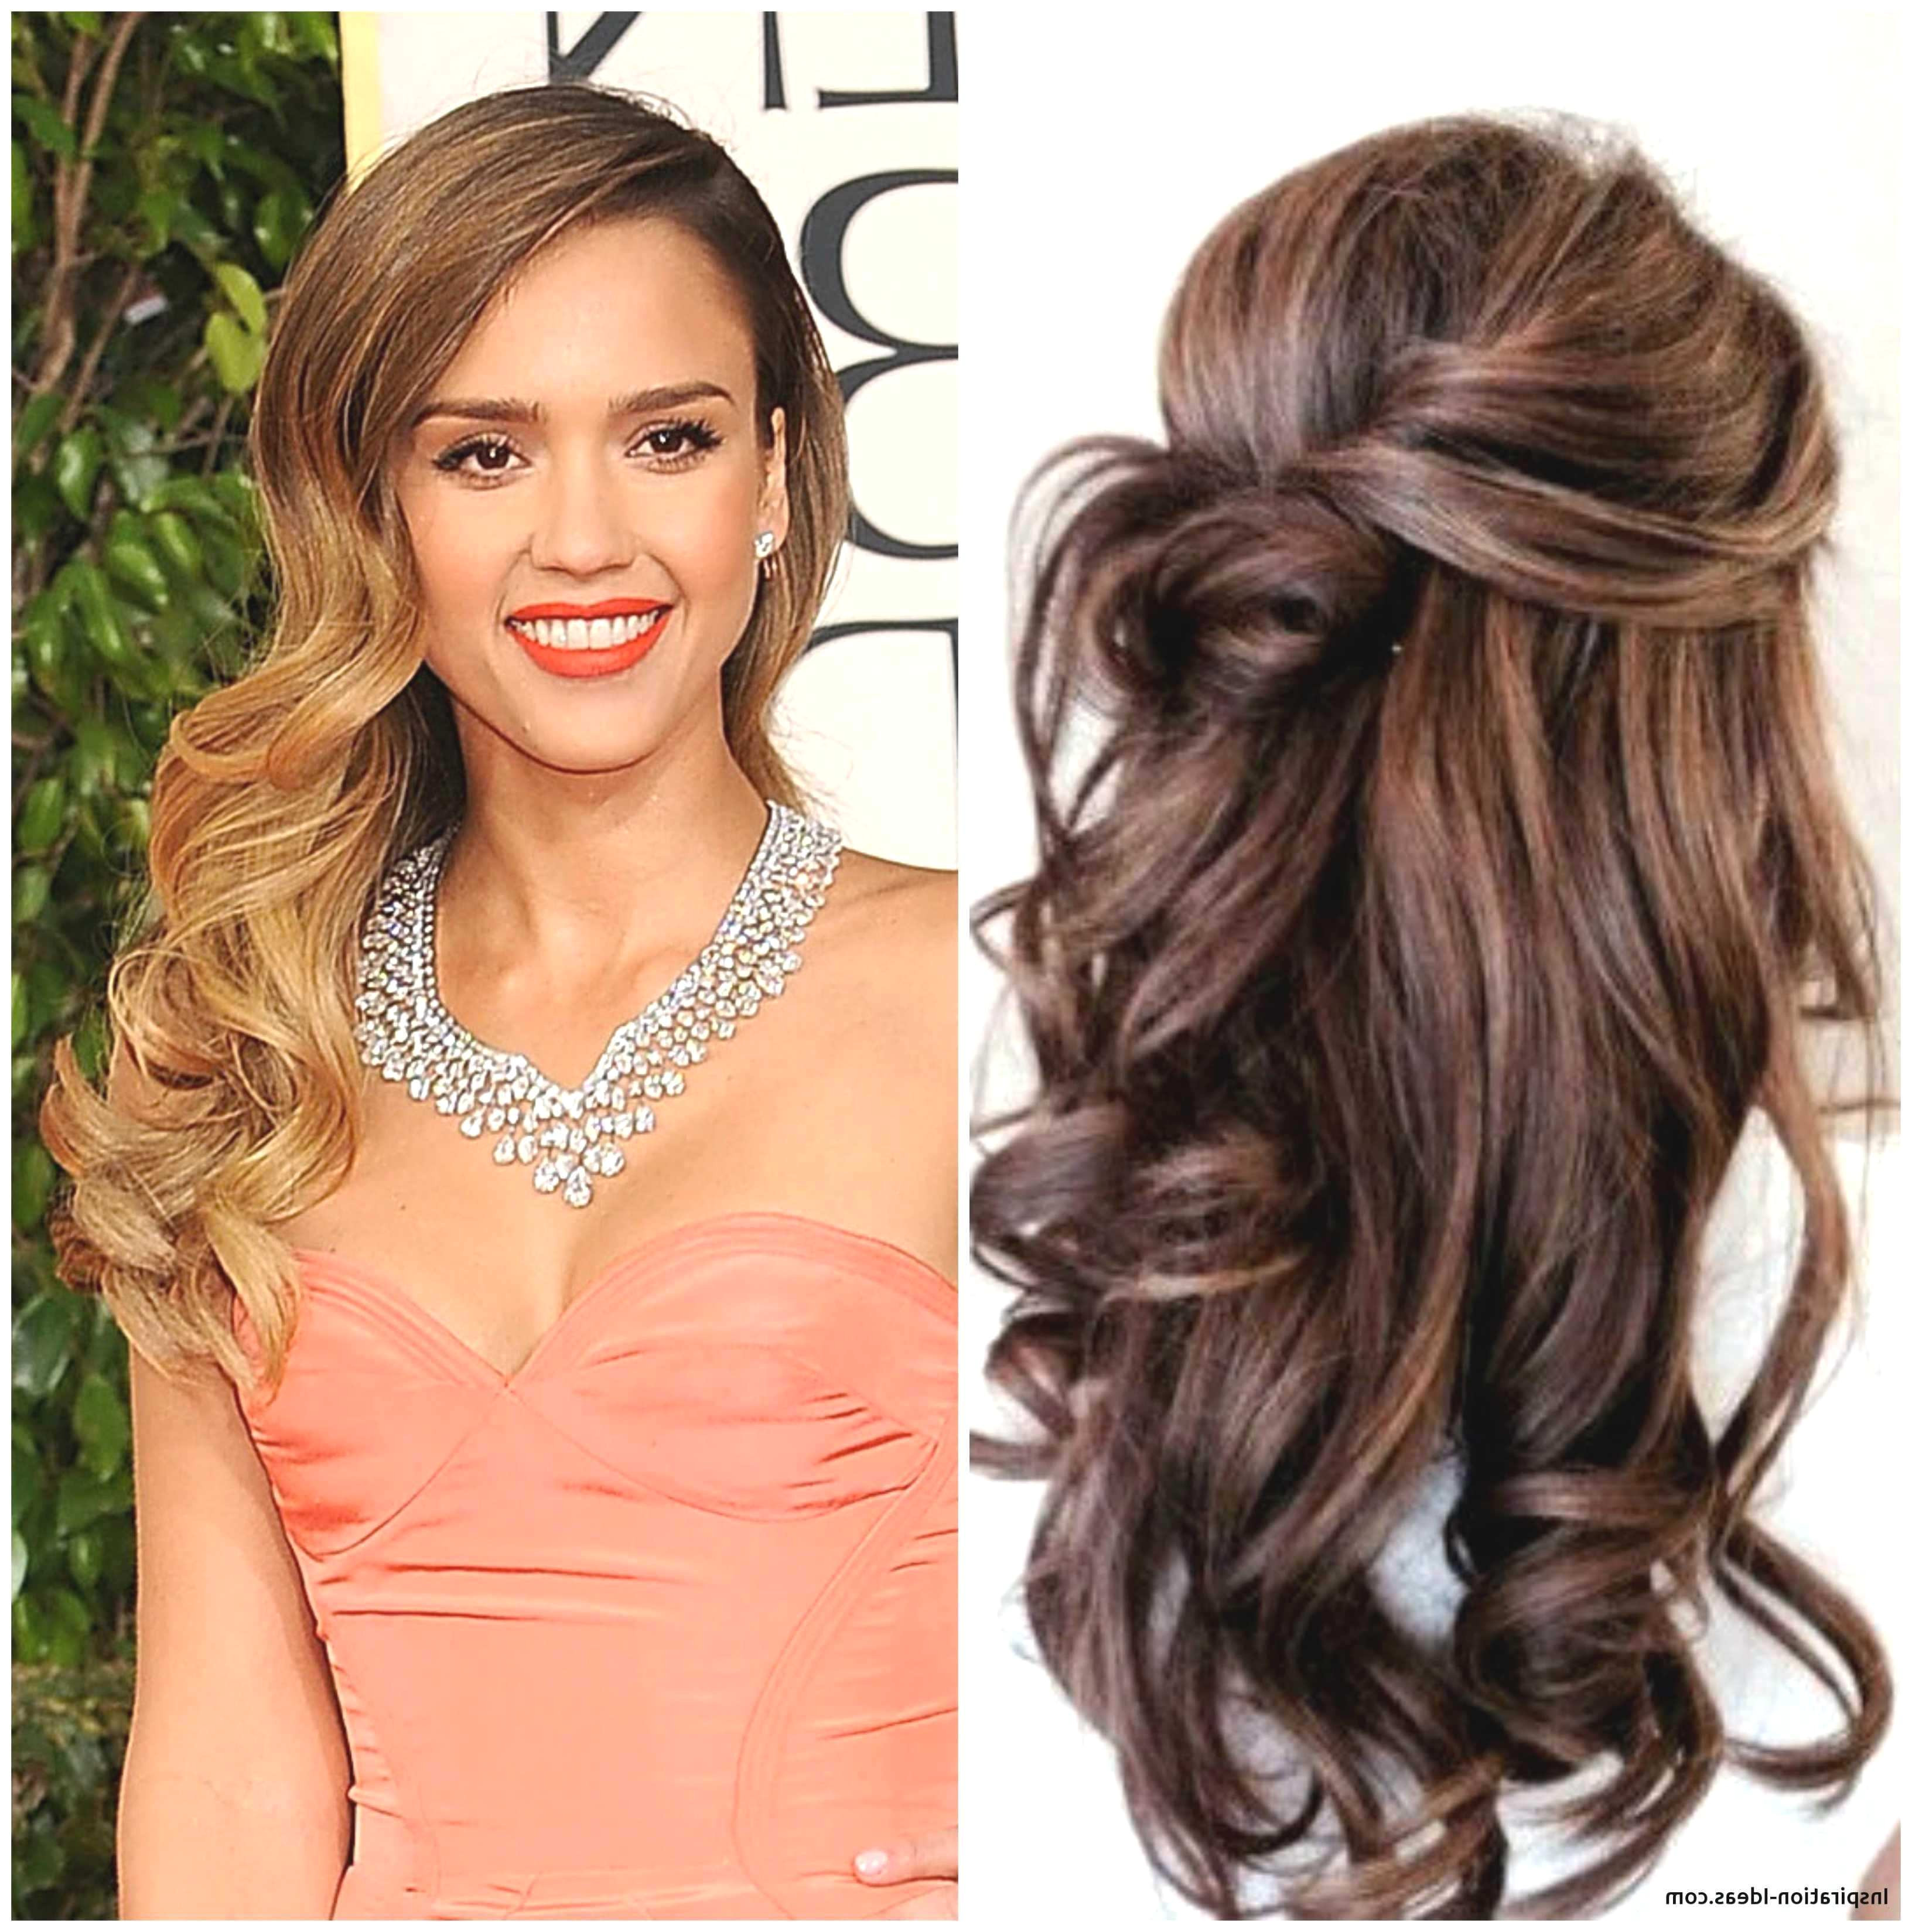 Hairstyle Ideas for Girls Awesome New Different Hairstyles for Girls with Names Ideas Hairstyle Ideas